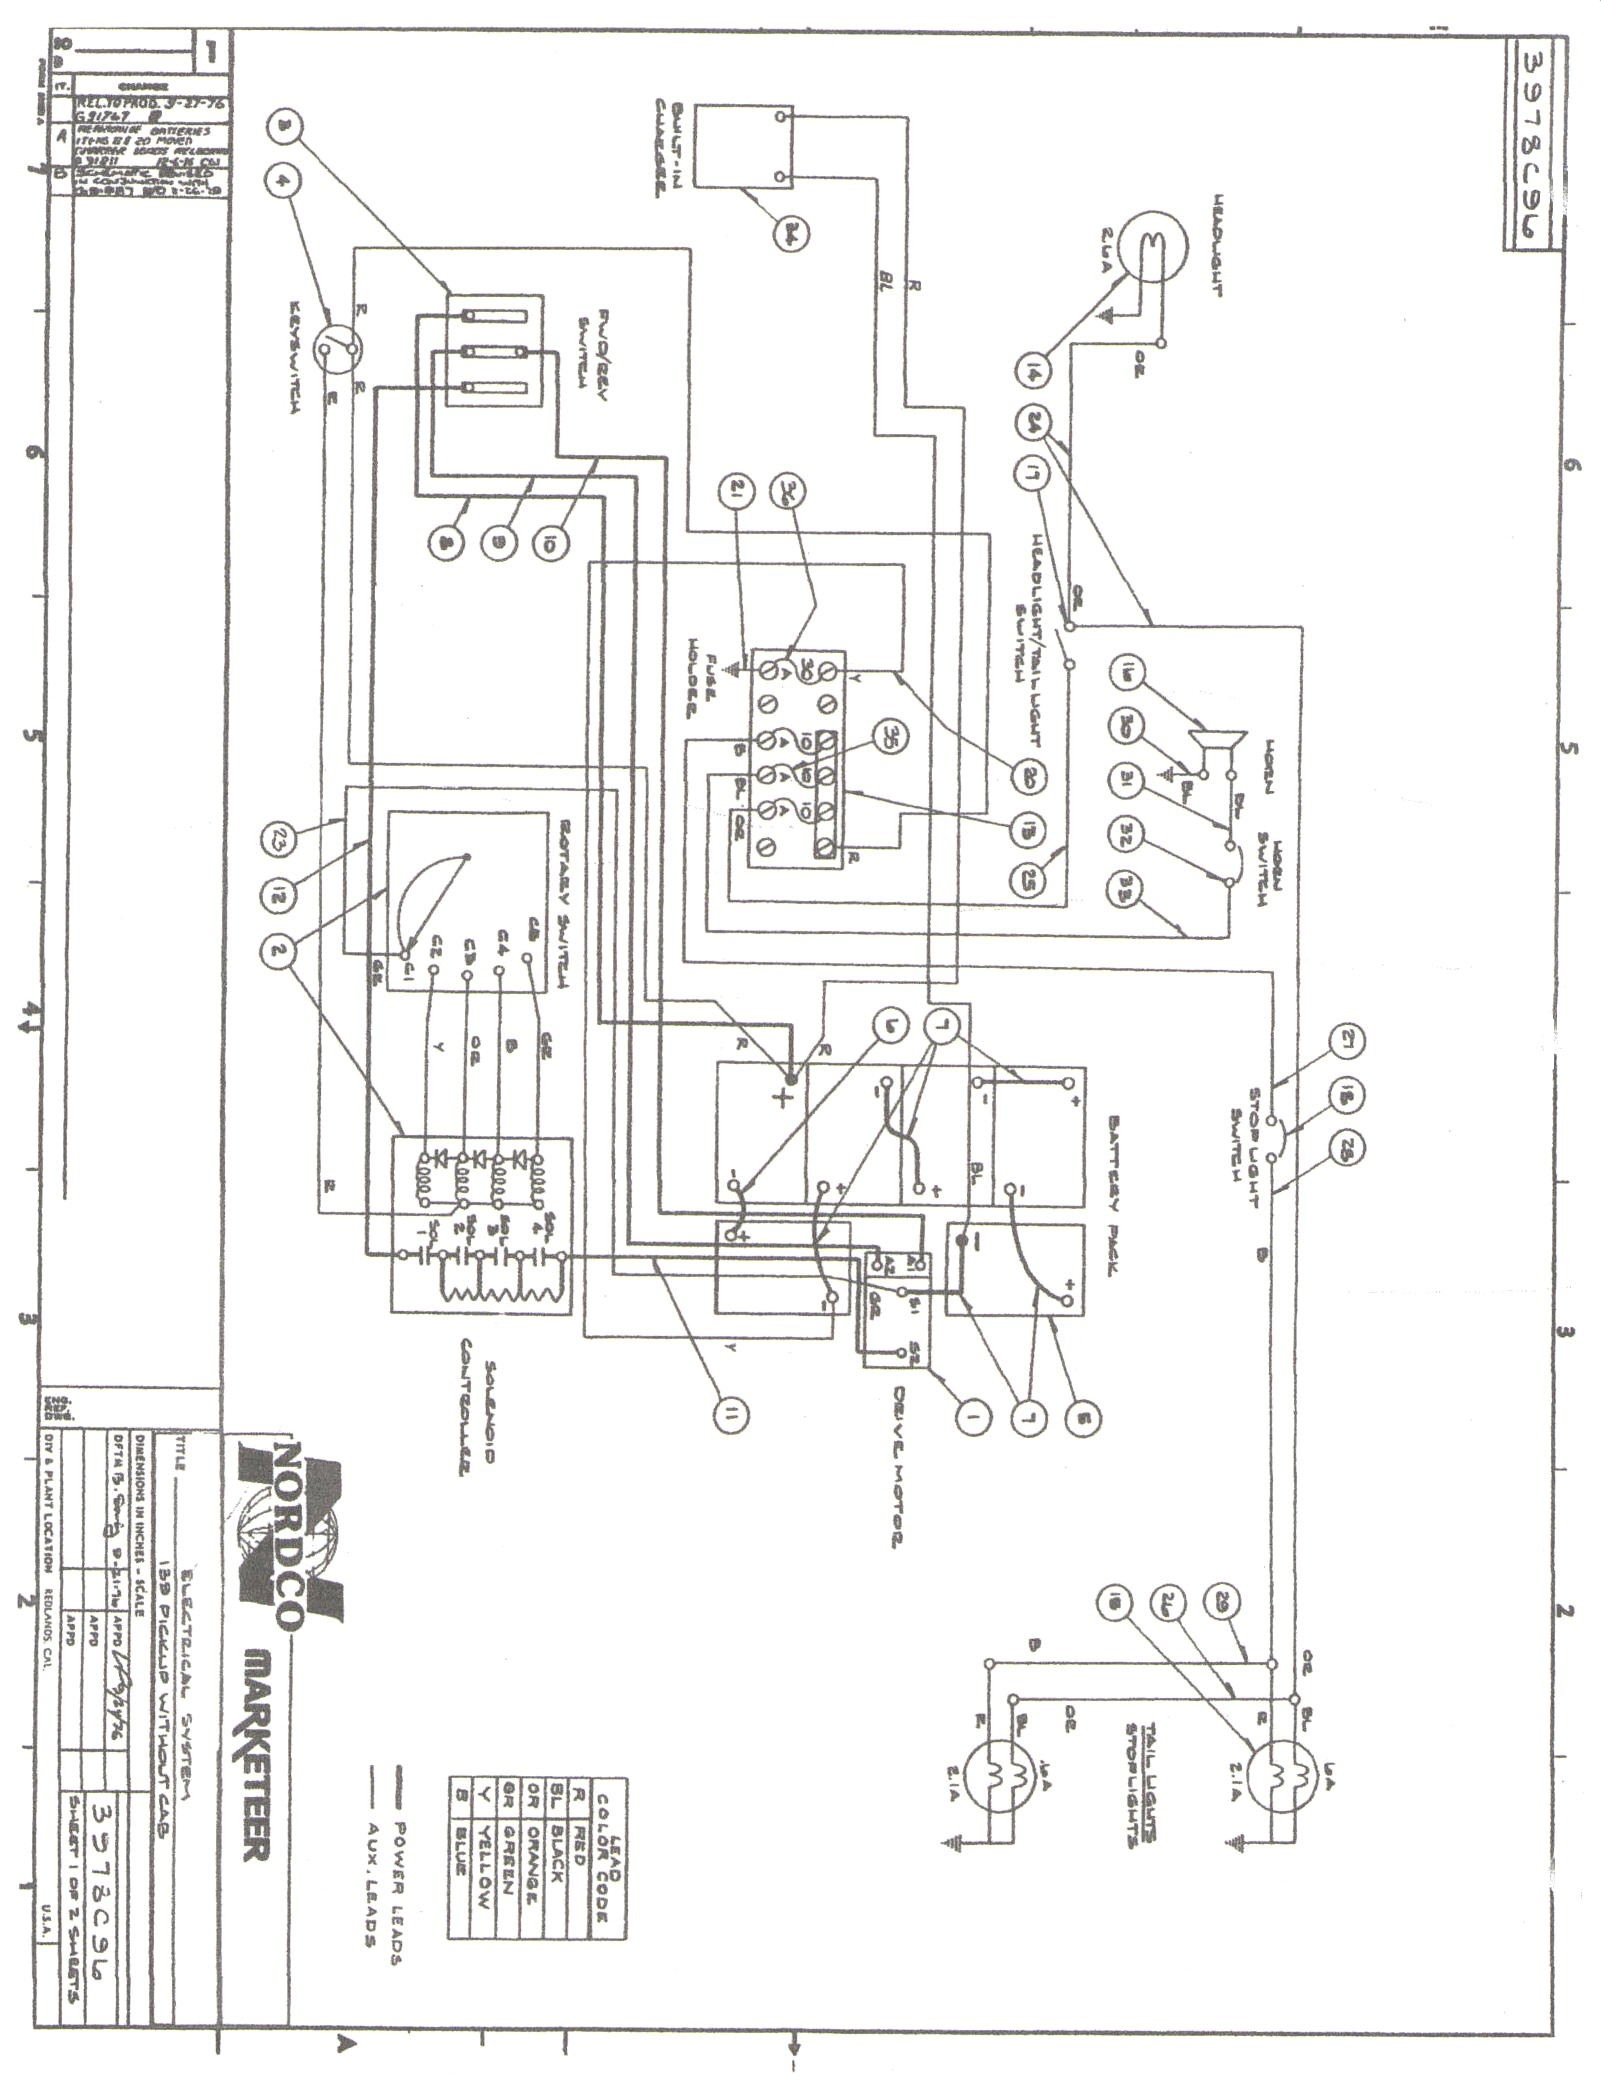 Diagram Ezgo Golf Cart Wiring Diagram For 98 Full